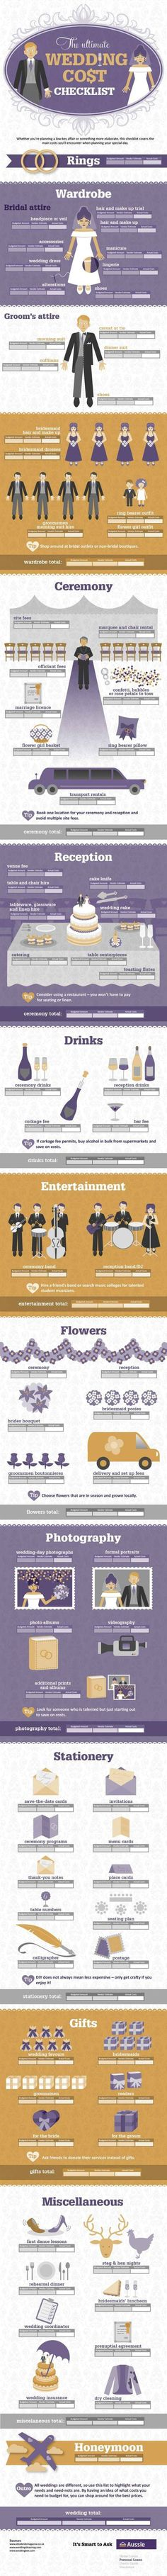 How to Throw a Wedding Reception for 1000 Weddings Wedding and